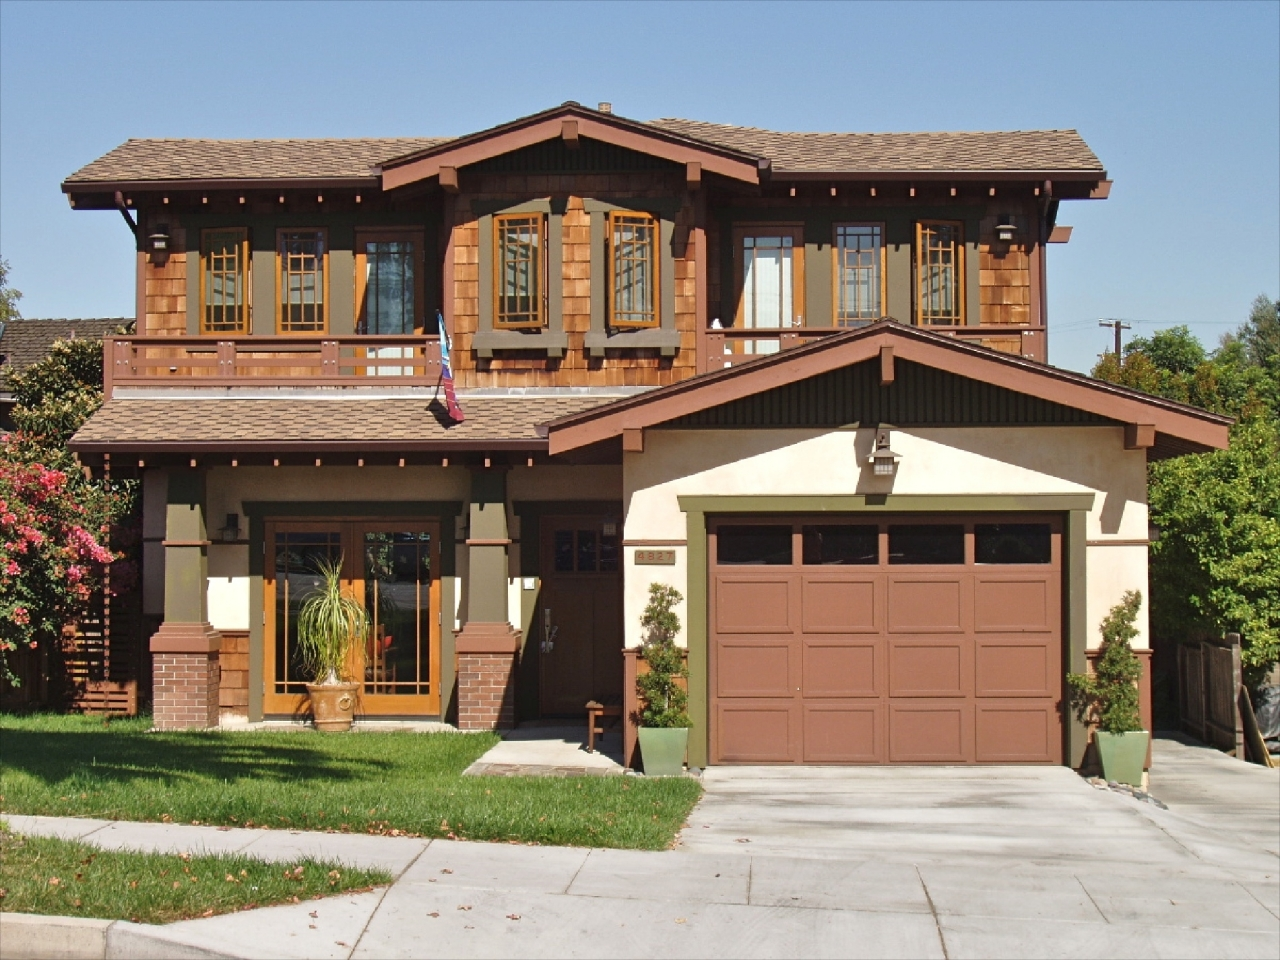 California craftsman bungalow houses california craftsman - What is a bungalow house ...